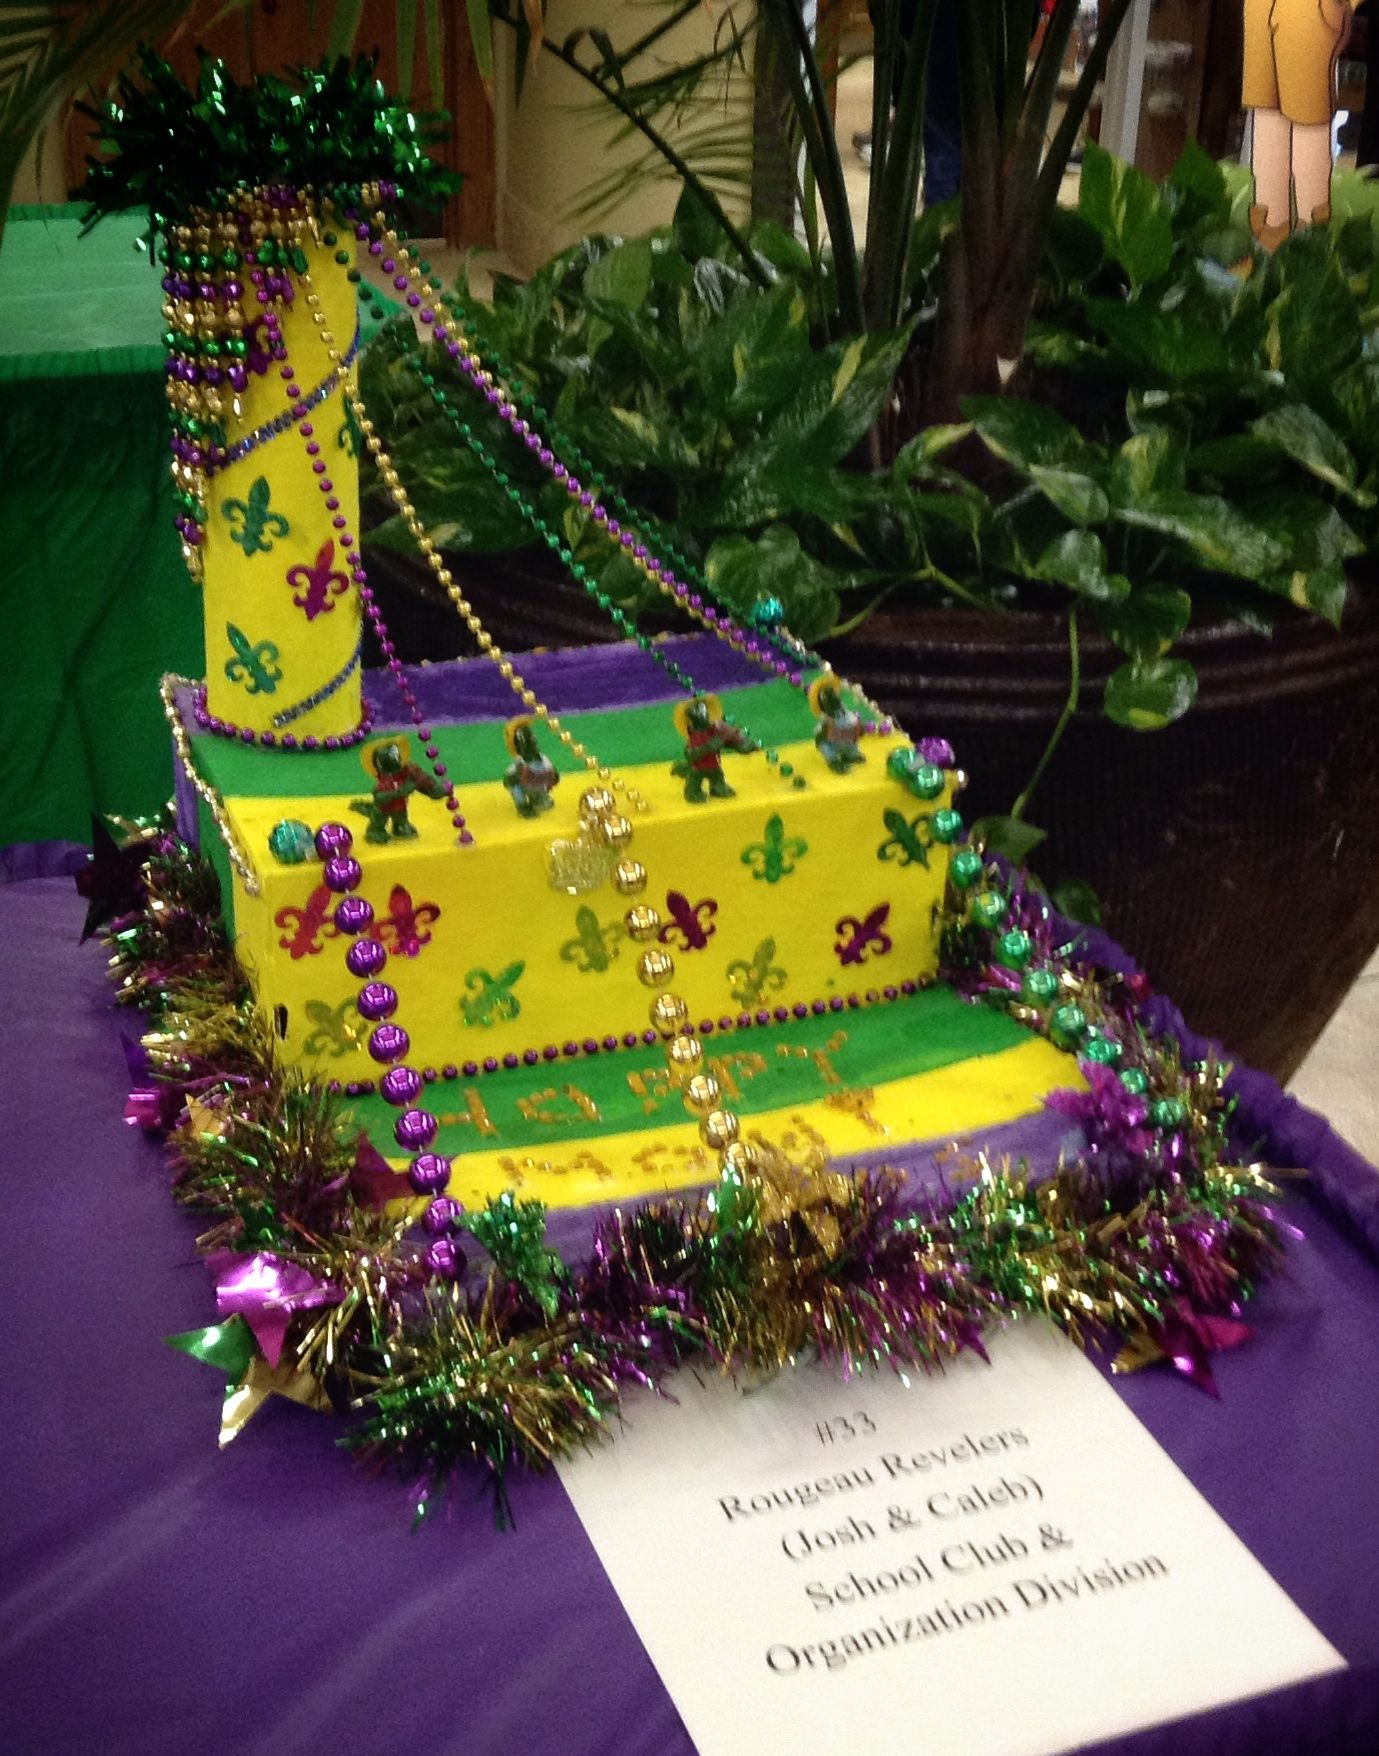 SMCS Art Club members entered the 2014 Mardi Gras Shoebox Float Contest sponsored by Lake Charles/ SW Louisiana Convention & Visitors Bureau and Mardi Gras of Southwest Louisiana, Inc. A closeup of the float entered by Josh and Caleb. It's a third place win!!